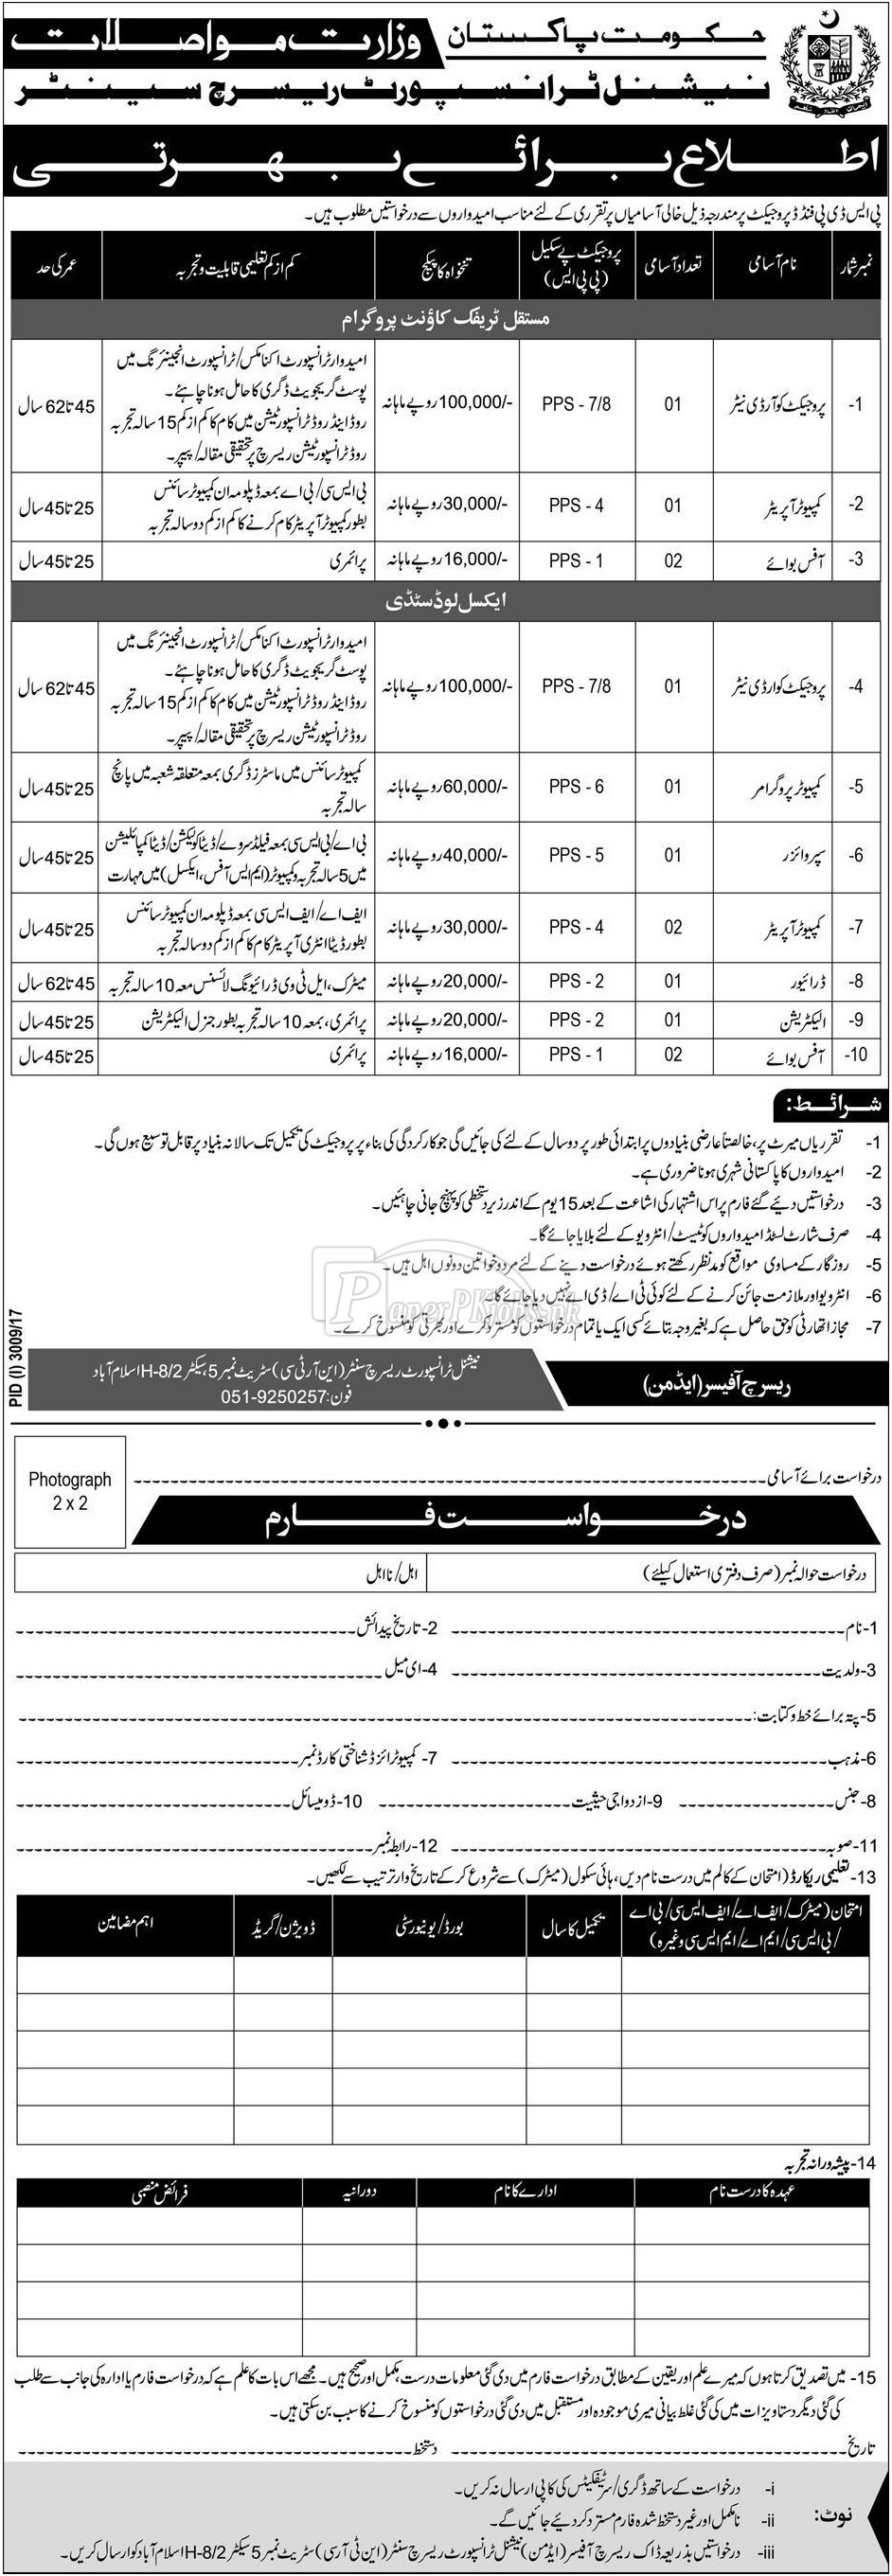 National Transport Research Center NTRC Ministry of Communications Islamabad Jobs 2017